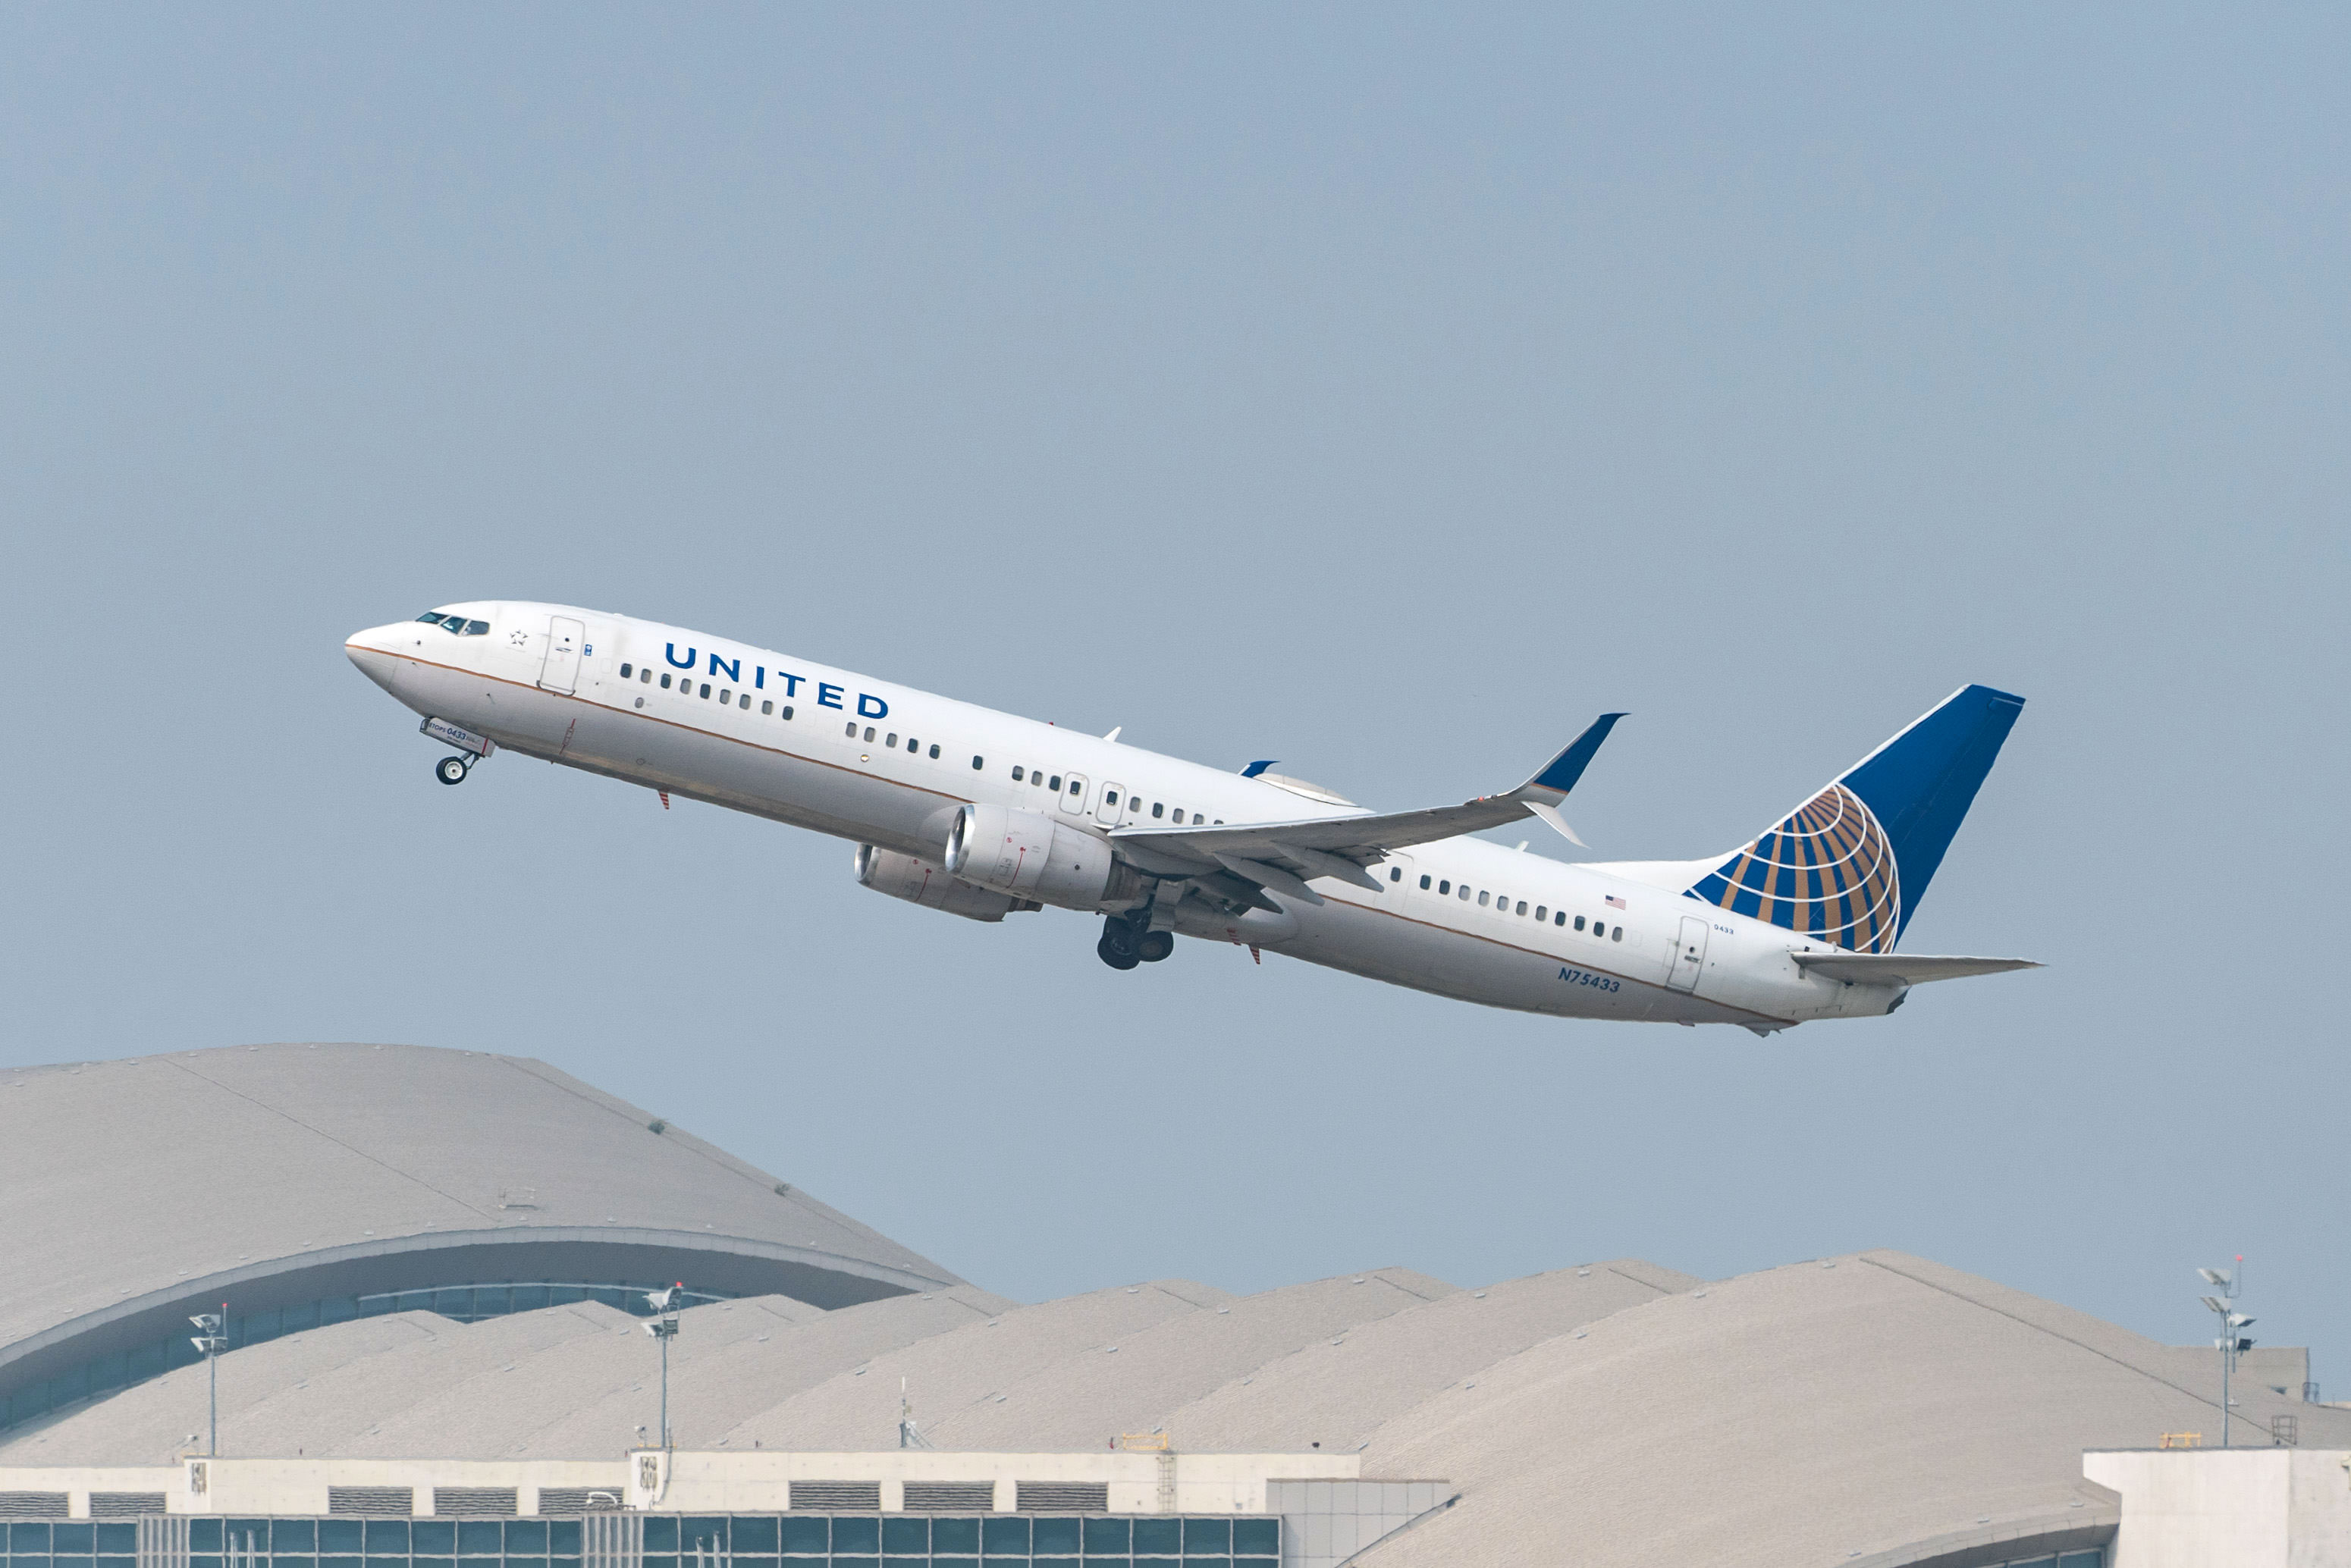 A United Airlines plane takes off from Los Angeles International Airport on September 15.